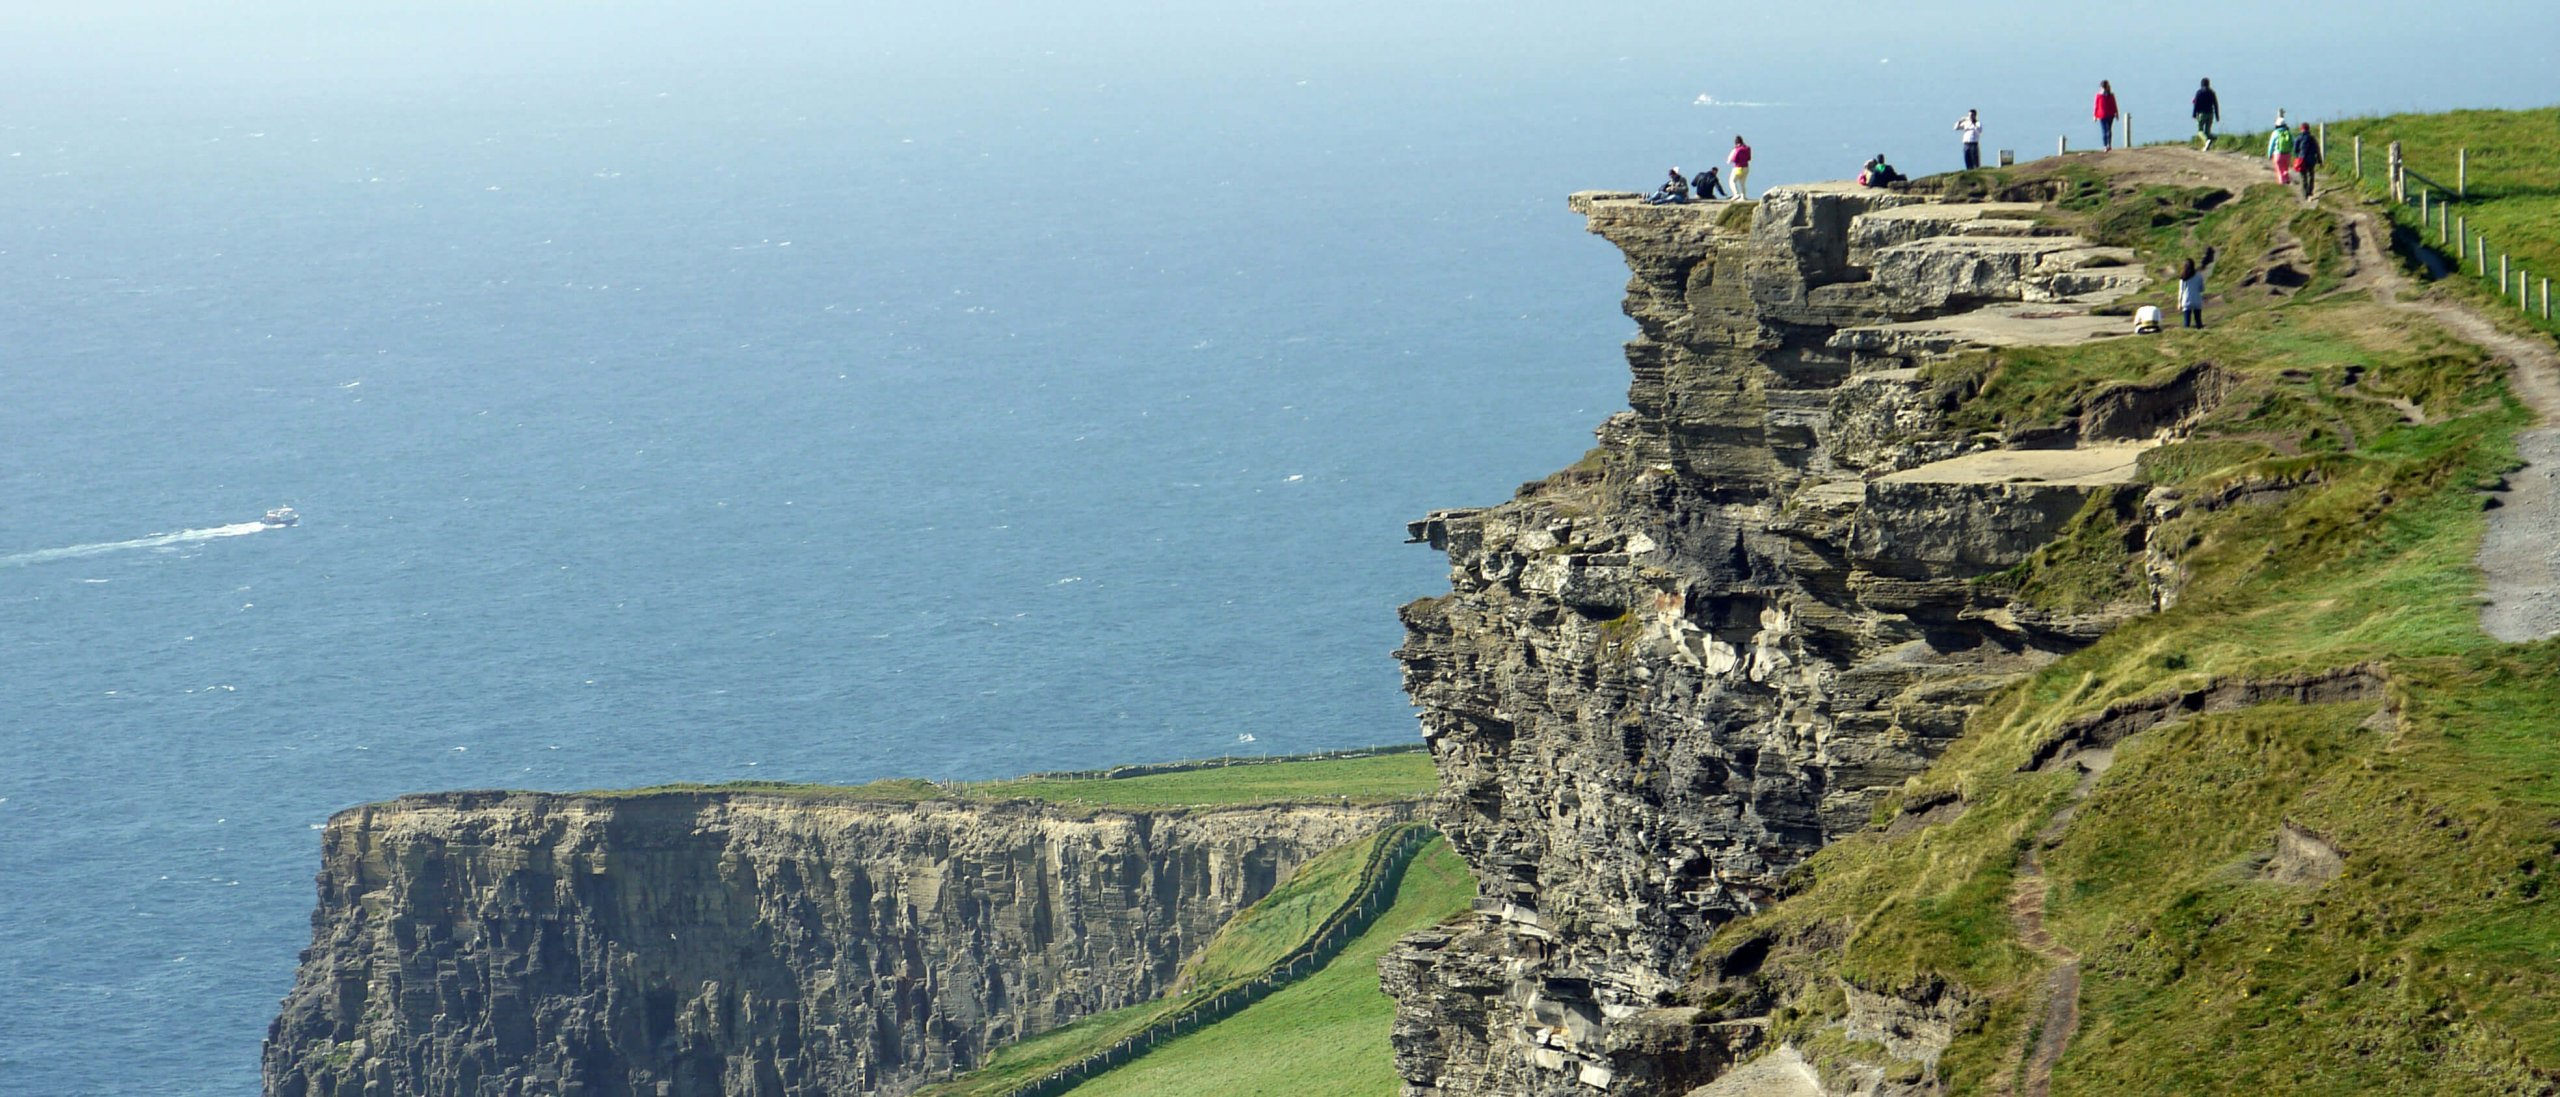 Hiking the Cliffs of Moher in Clare